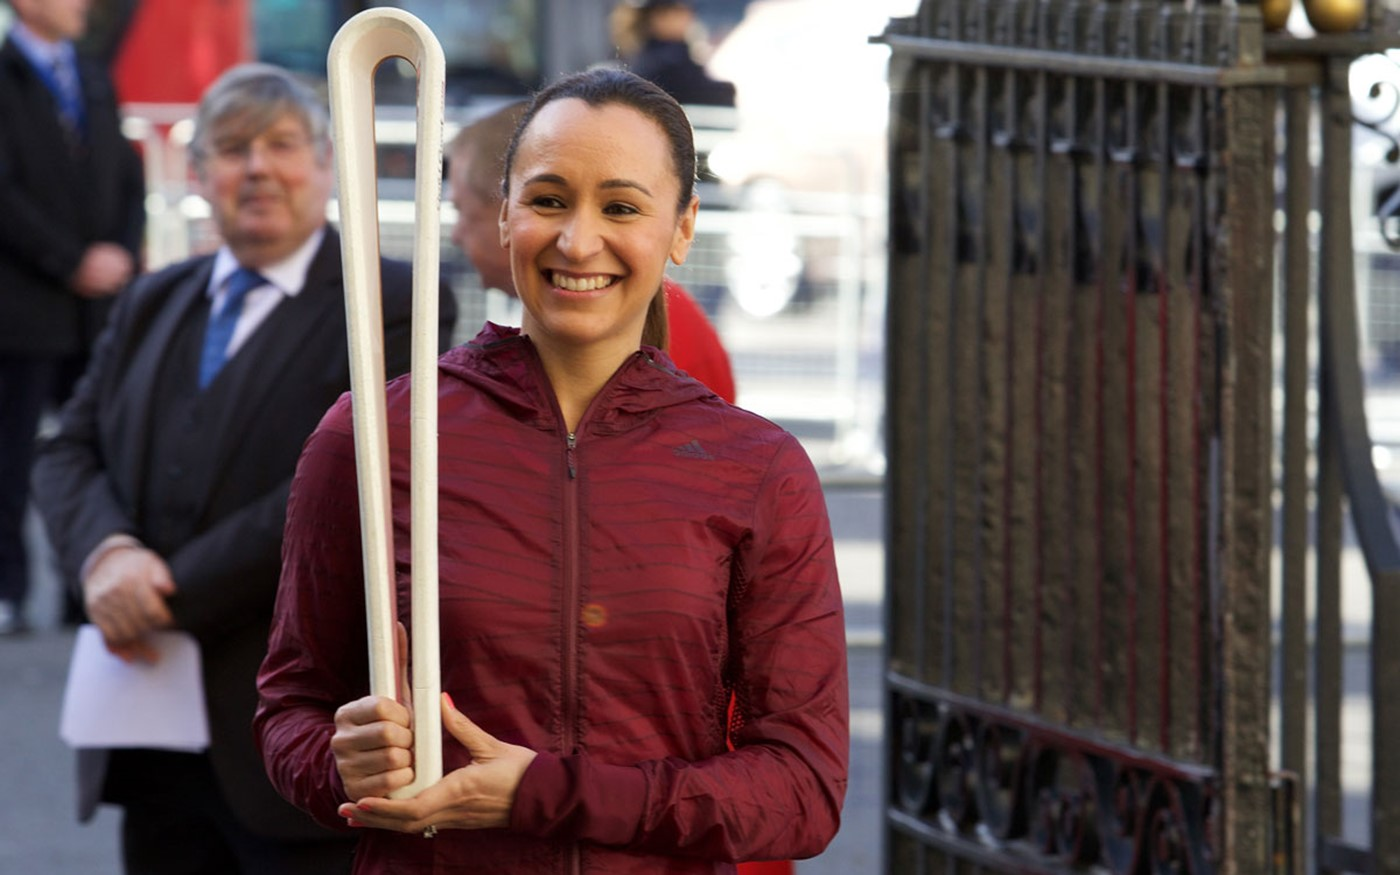 The Queen's Baton for the Gold Coast 2018 Commonwealth Games was brought into the Abbey by Dame Jessica Ennis-Hill